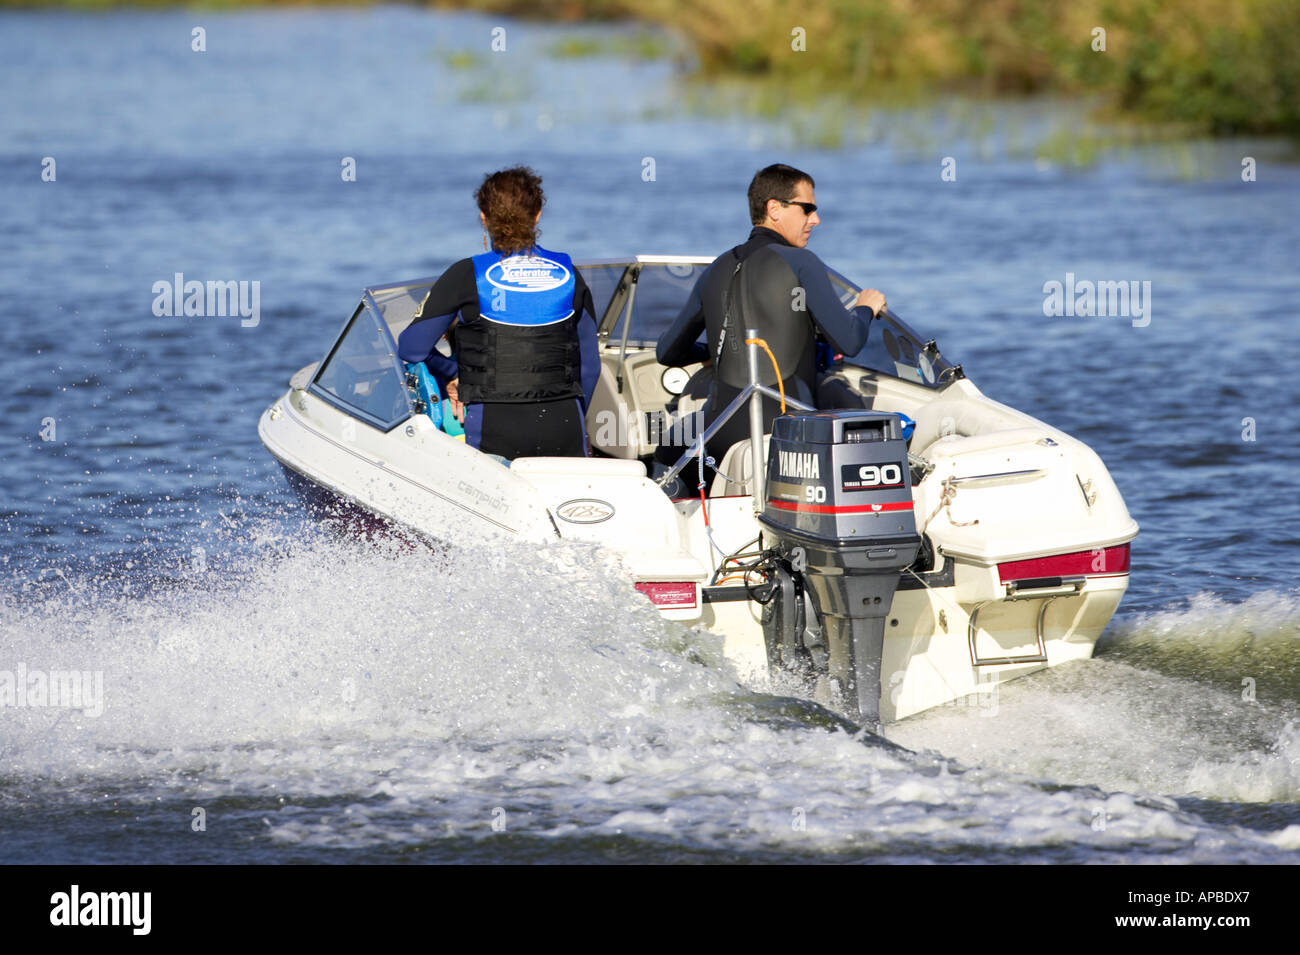 couple in wetsuits on a motor speed boat with yamaha 90 outboard speeding along the river bann county antrim northern ireland - Stock Image